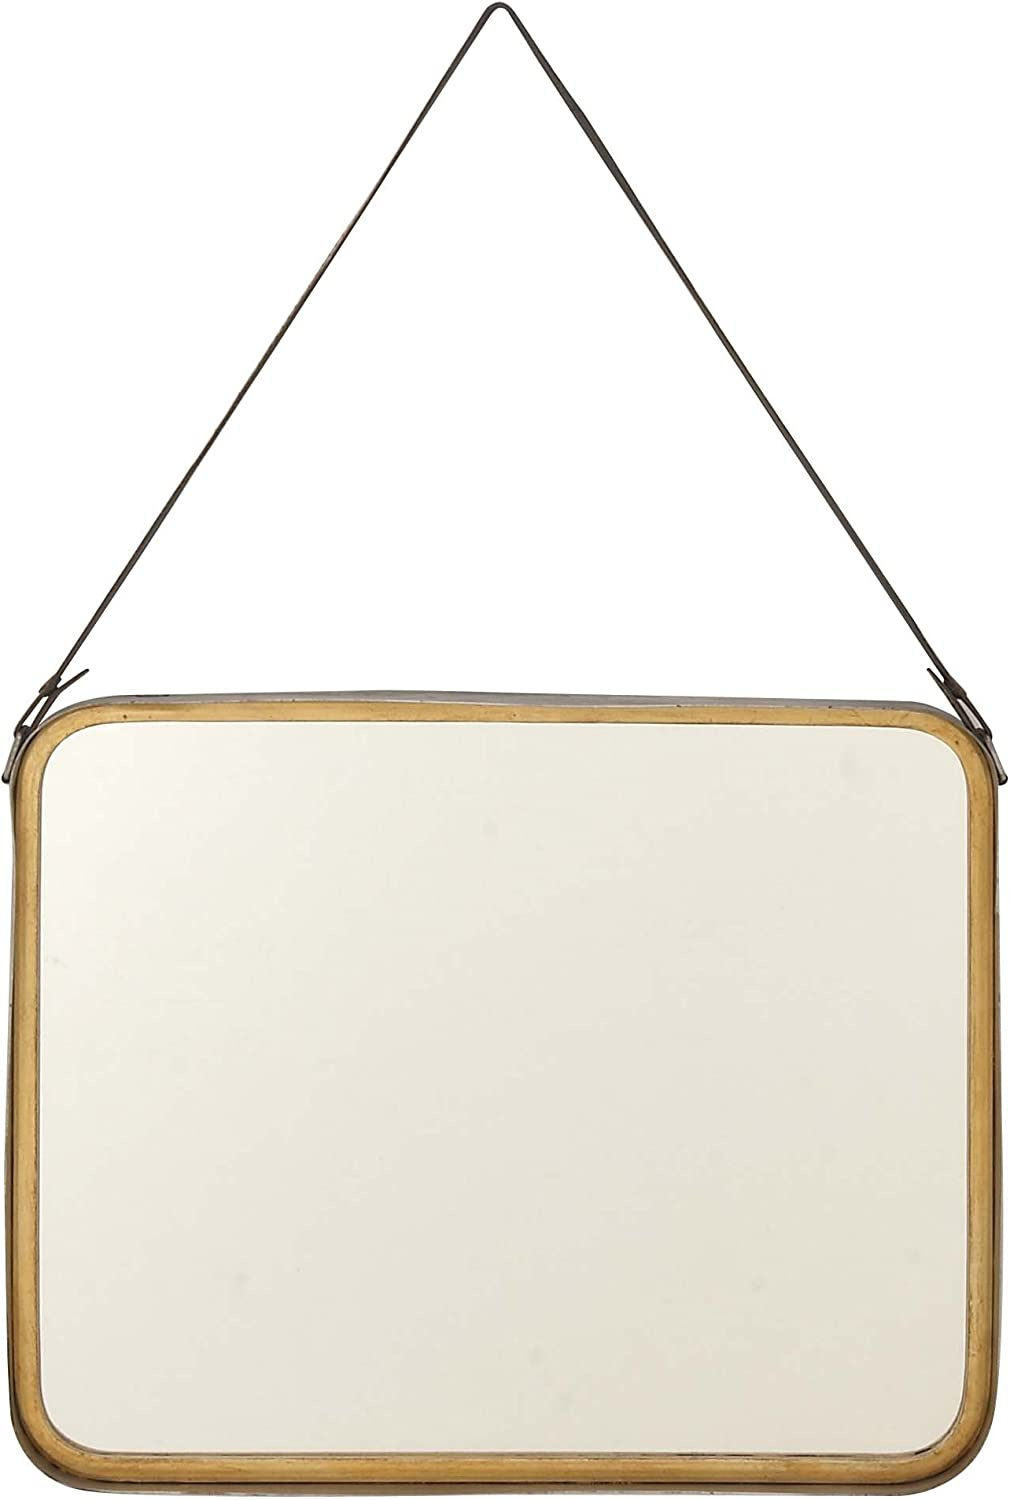 Deco 79 98731 Rounded Square Wooden Wall Mirror, gold Black